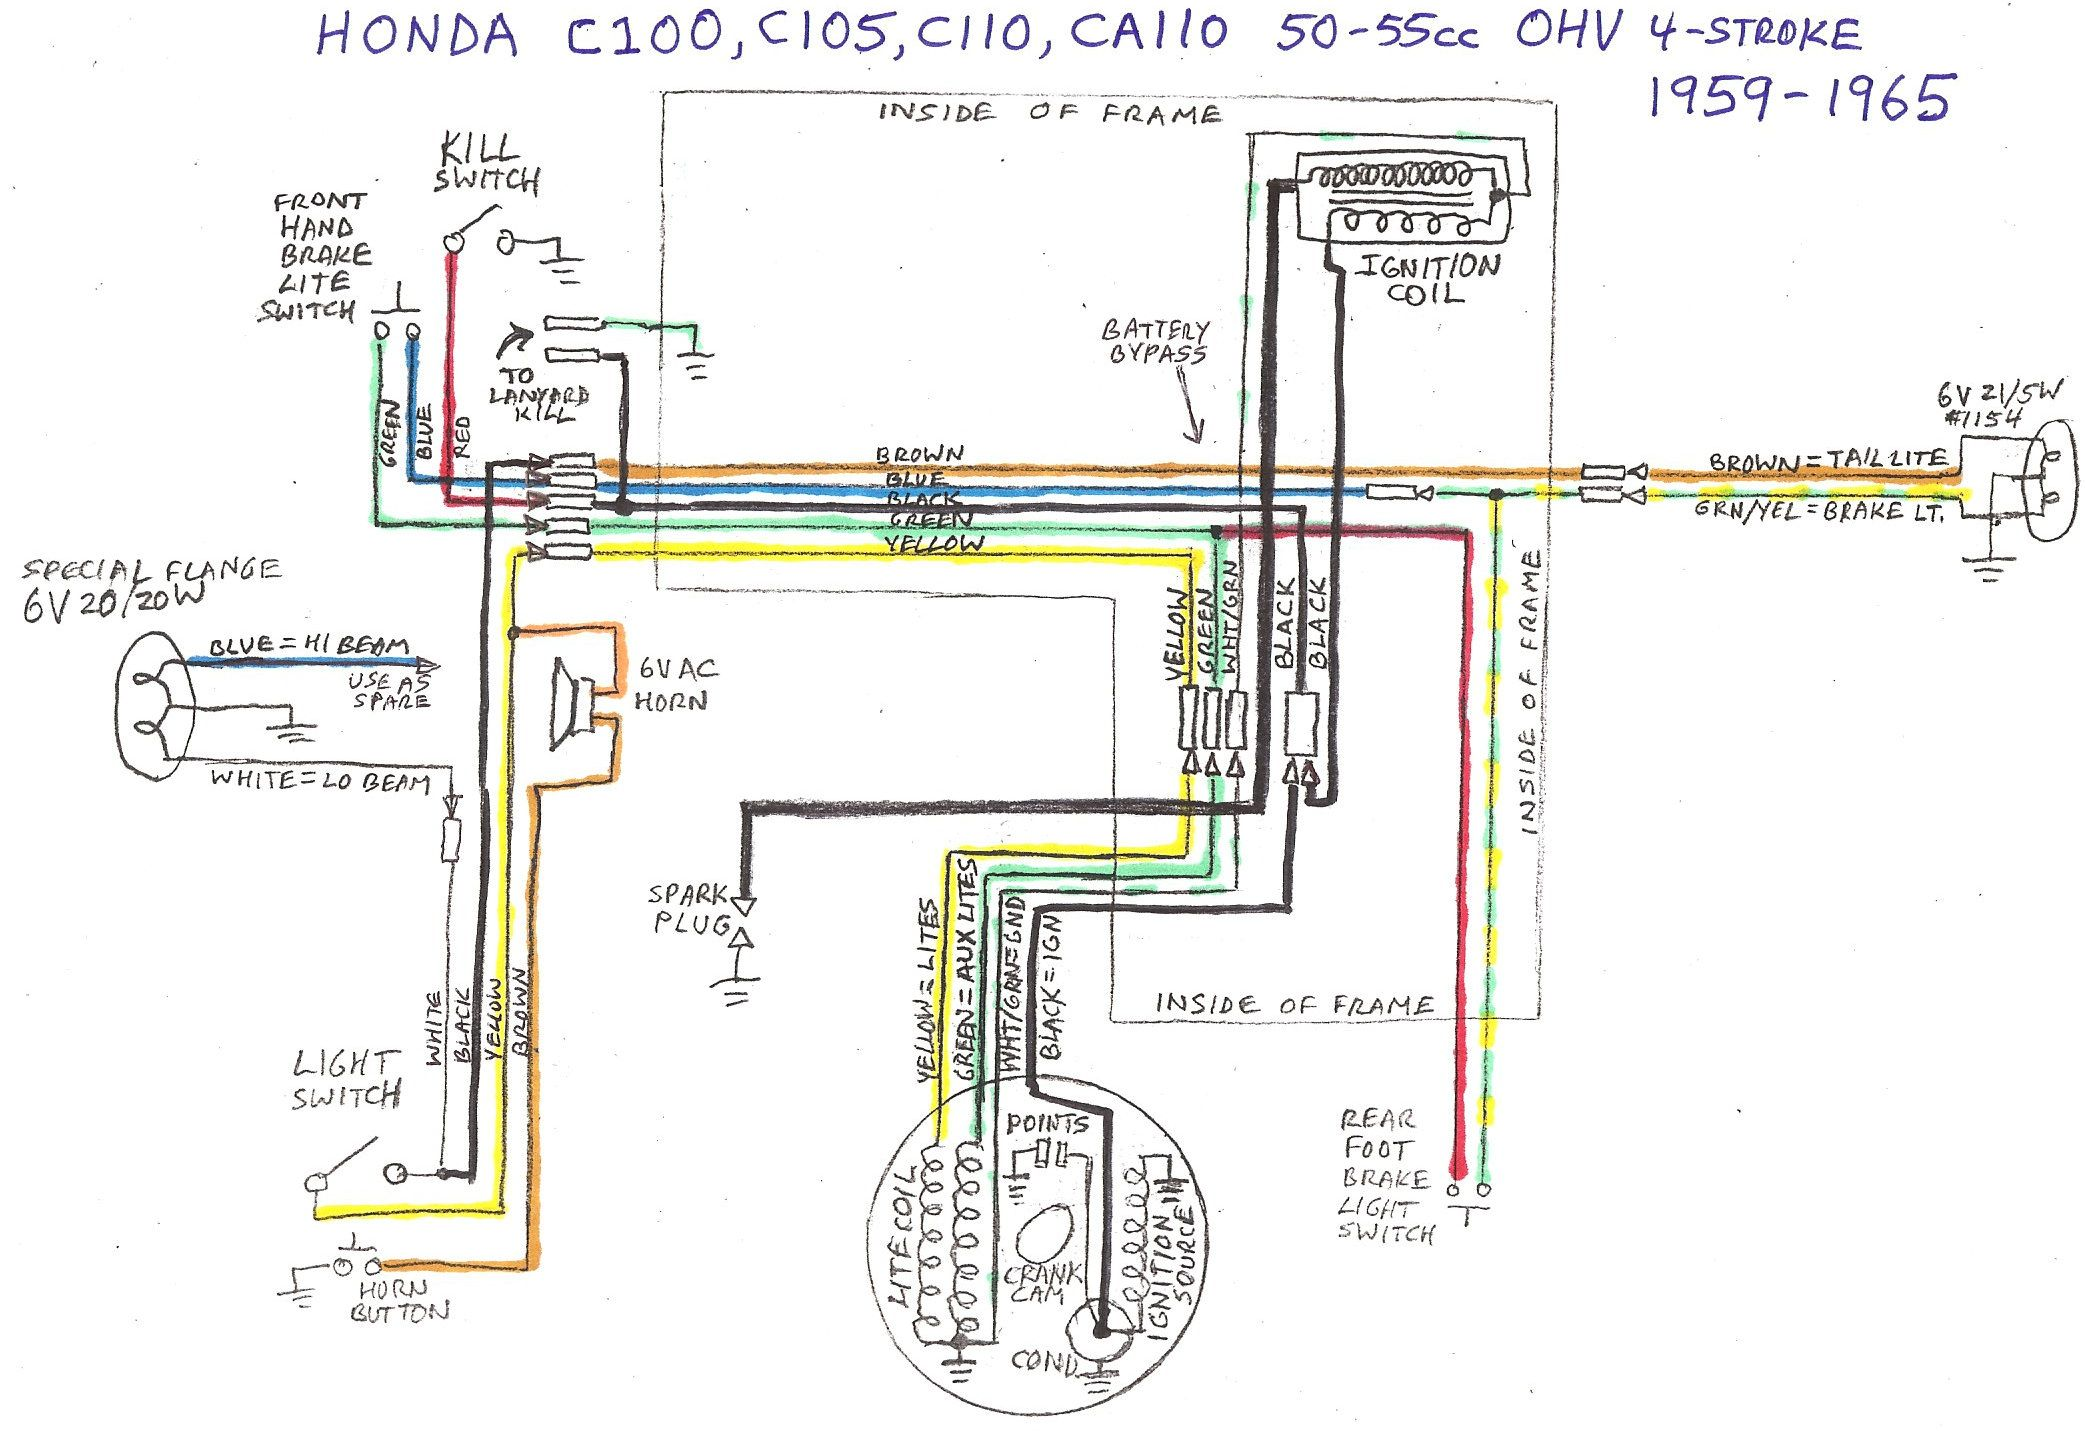 1970s Honda Cub Wiring Diagram | Wiring Diagram on cub parts diagram, cub cadet 782 schematic, cub starter diagram, cub cadet diagrams, cub cadet wiring,